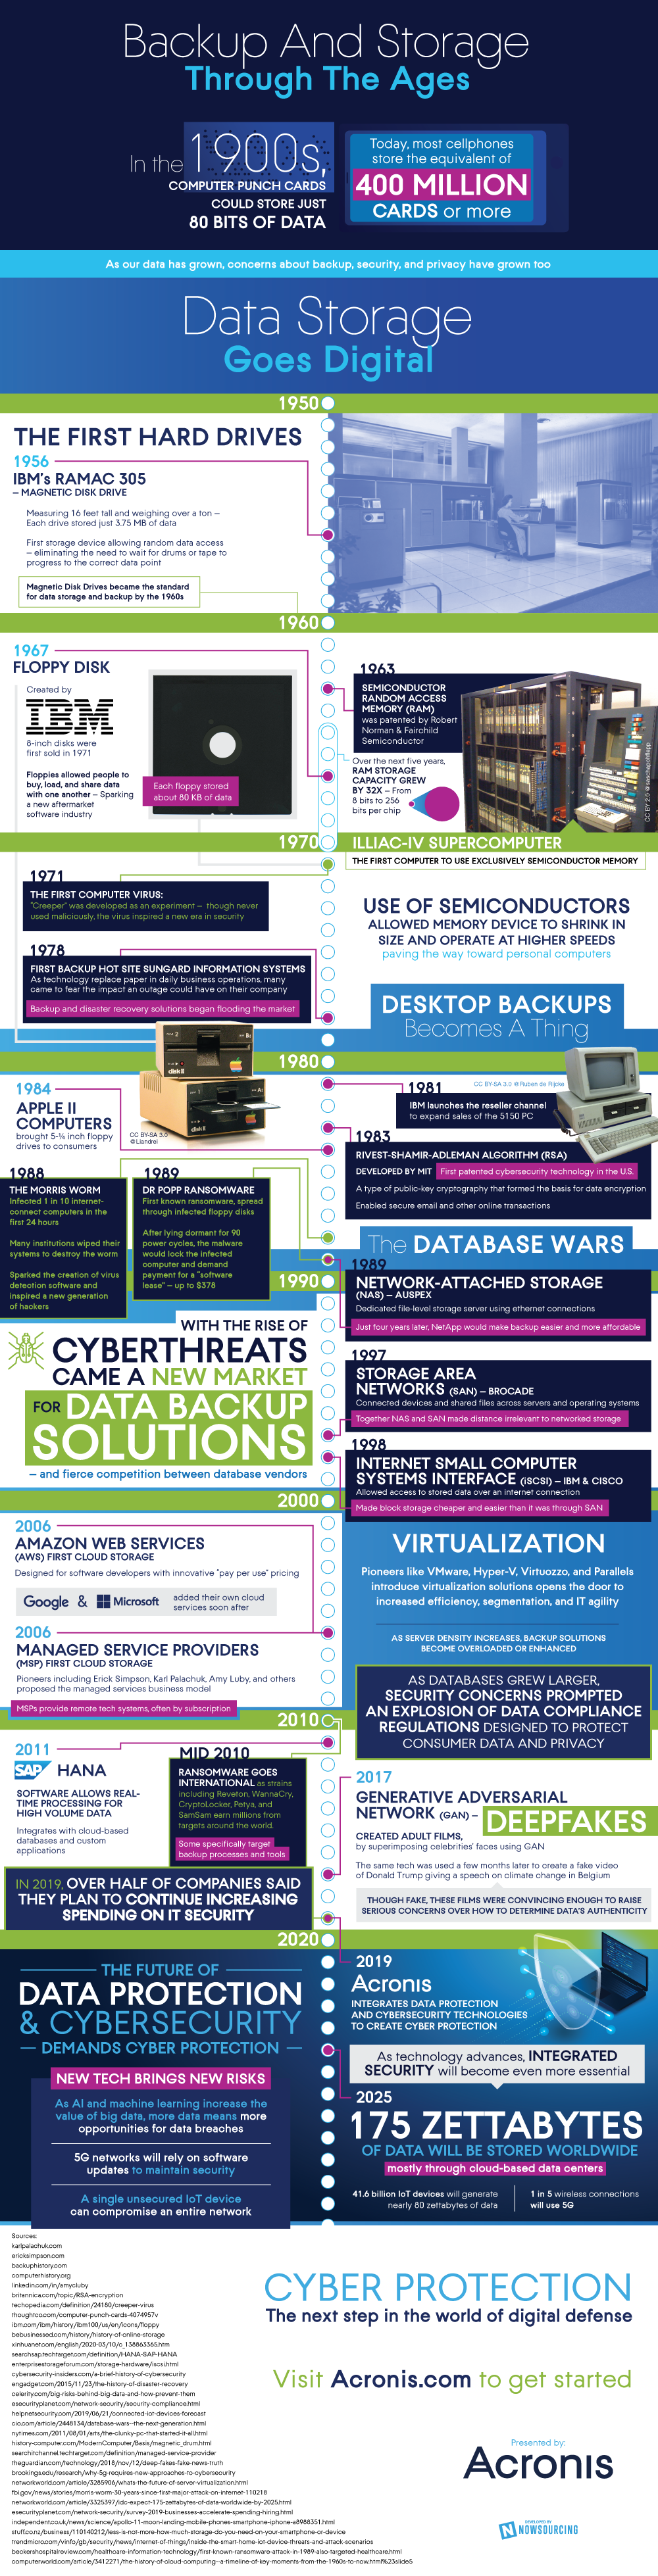 Infographic of backup and storage history from the 1900s to today